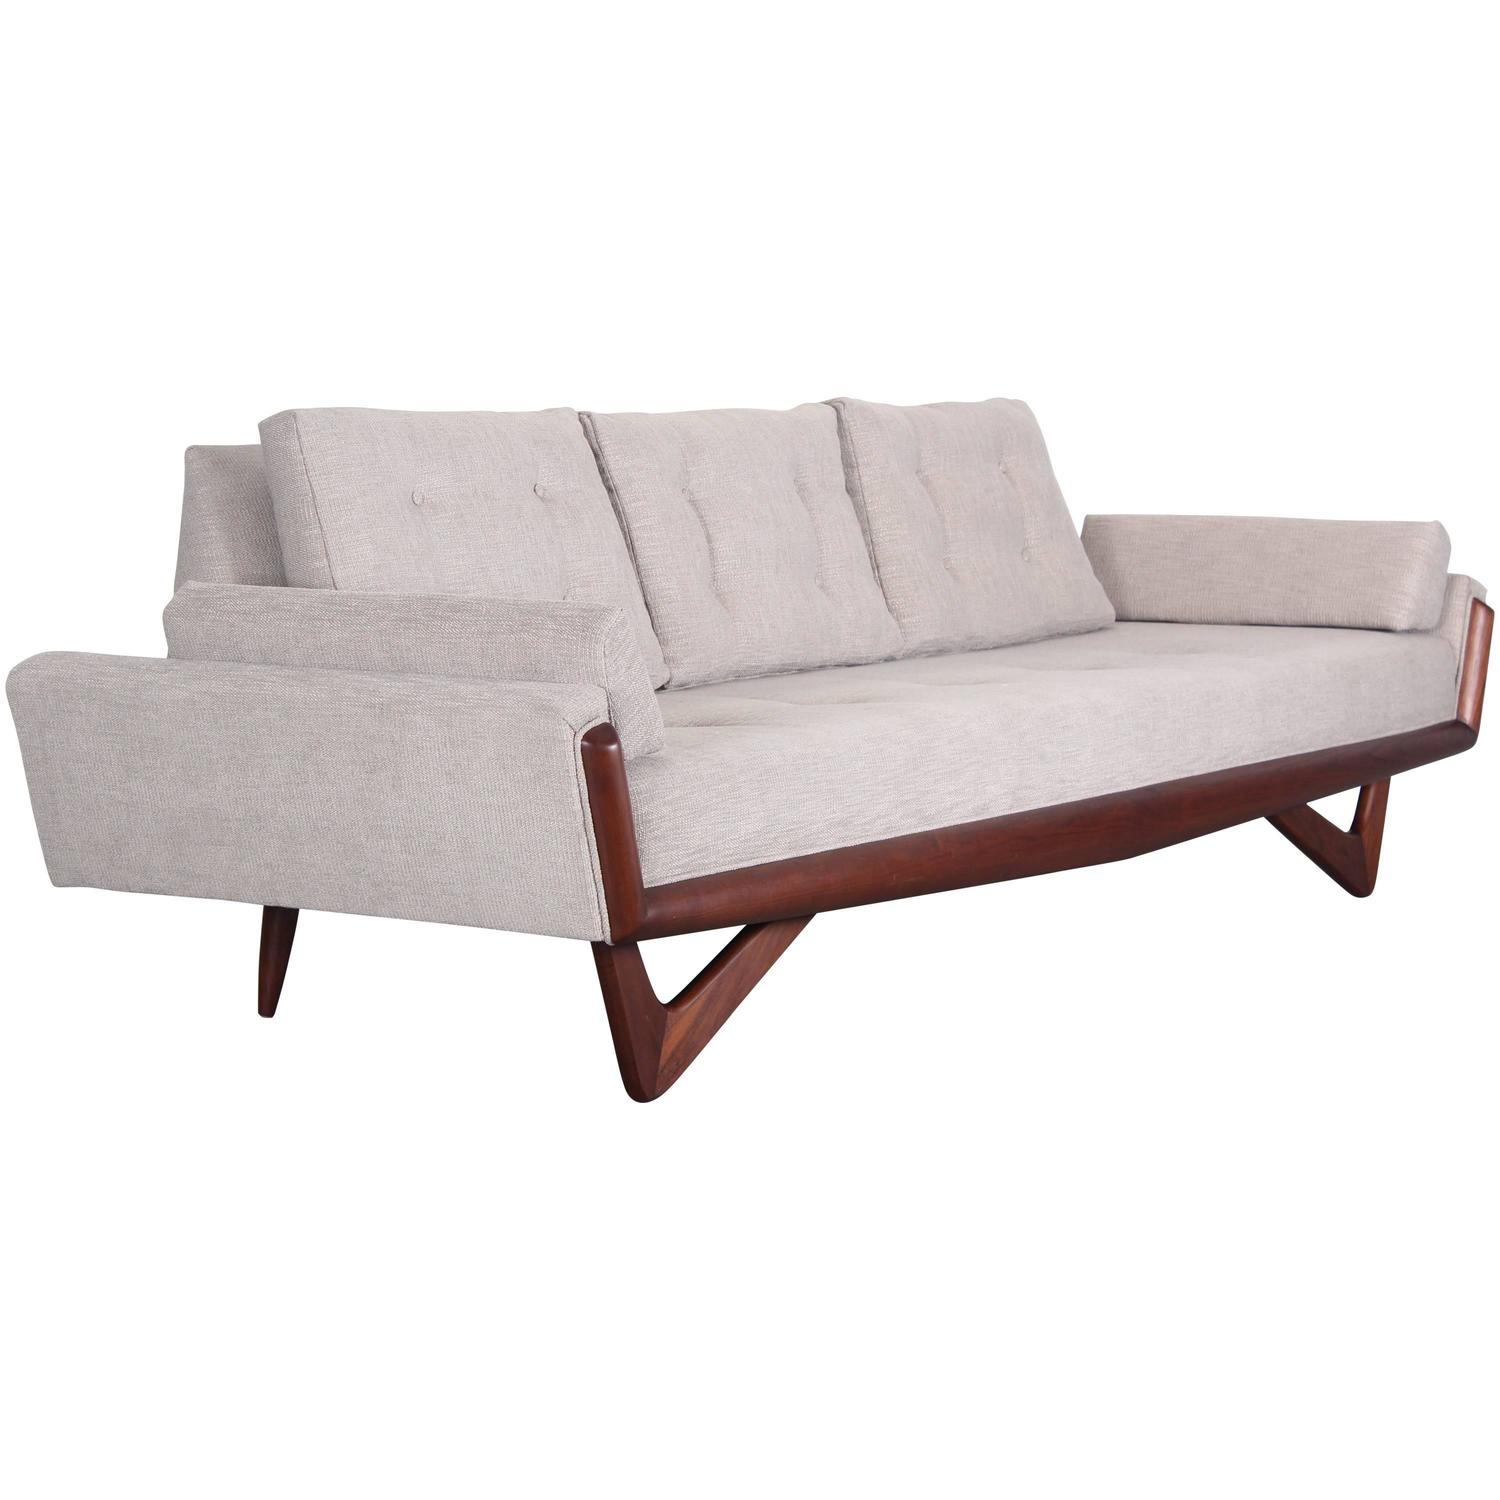 1960s Adrian Pearsall Sofa Model 2404S For Sale at 1stdibs